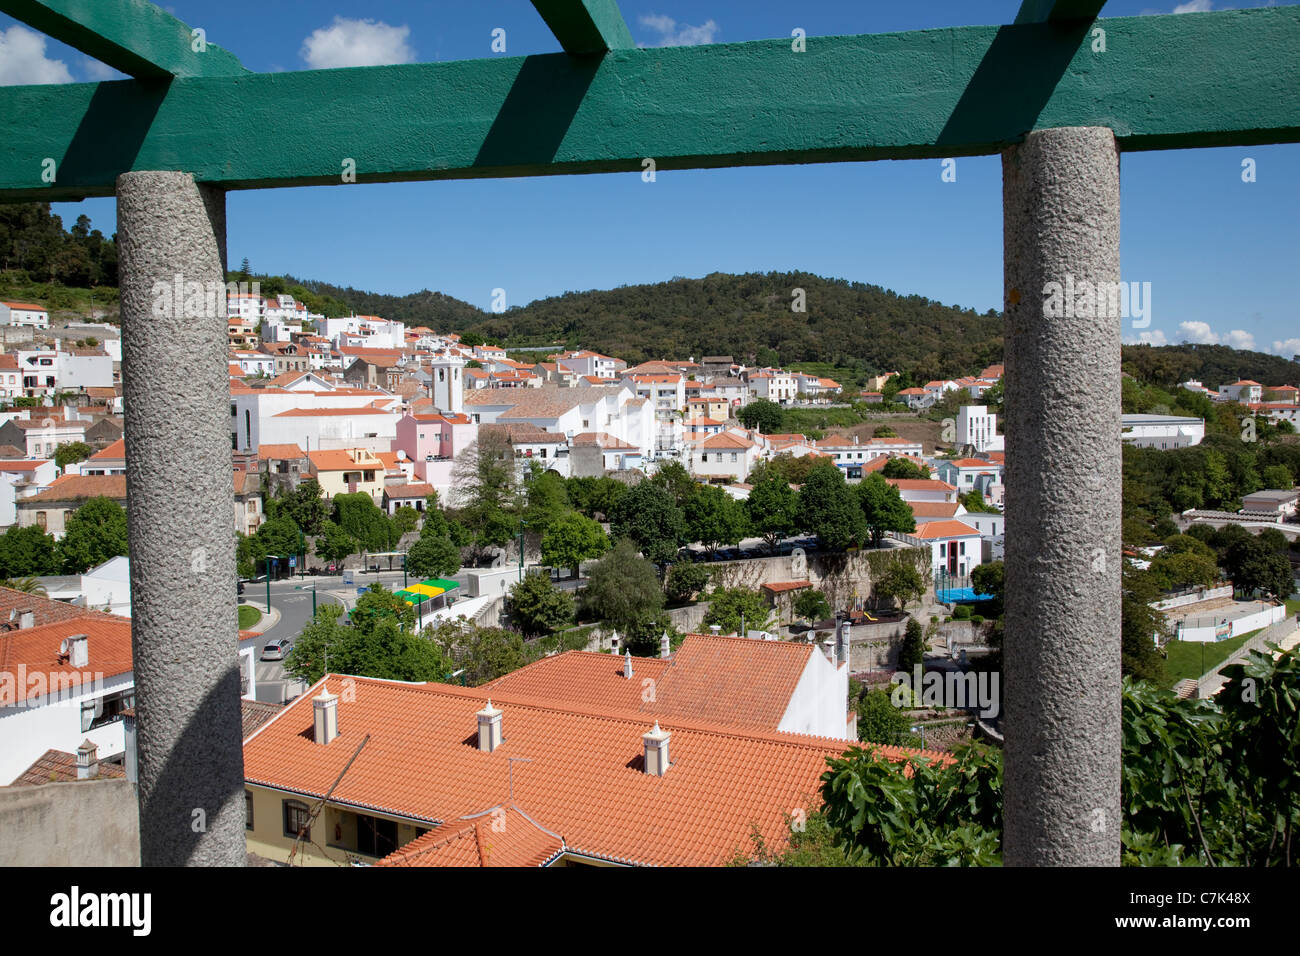 Portugal, Algarve, Monchique, View over Town - Stock Image